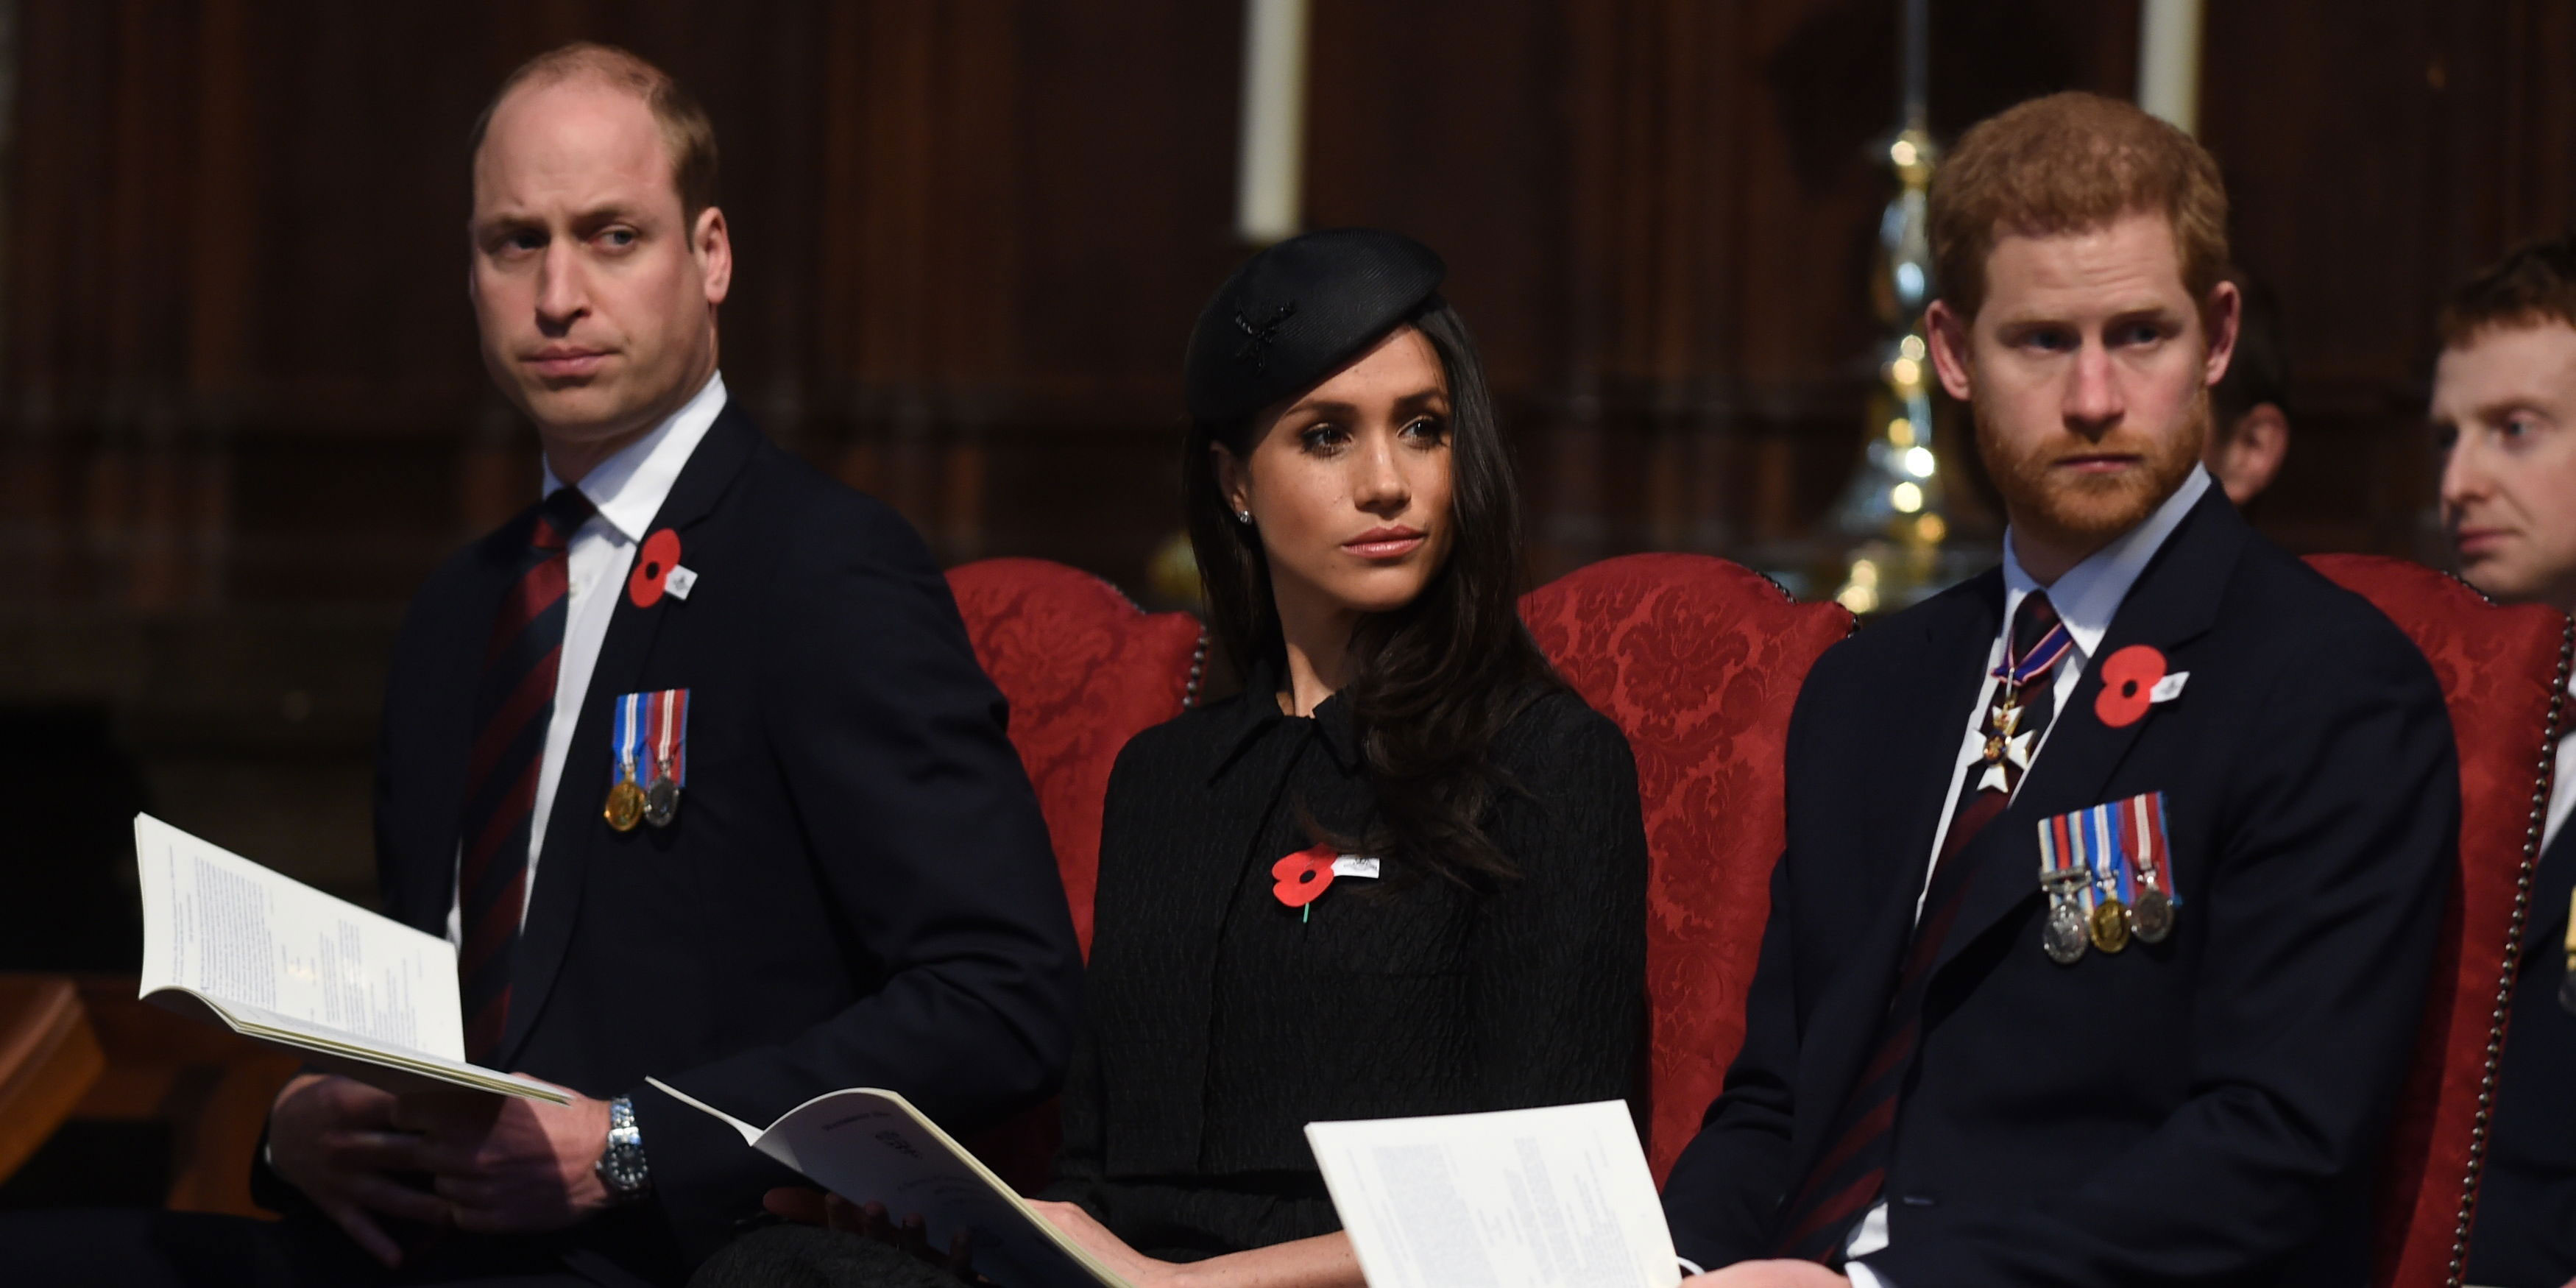 anzac-service-the-duke-of-cambridge-prince-harry-meghan-markle